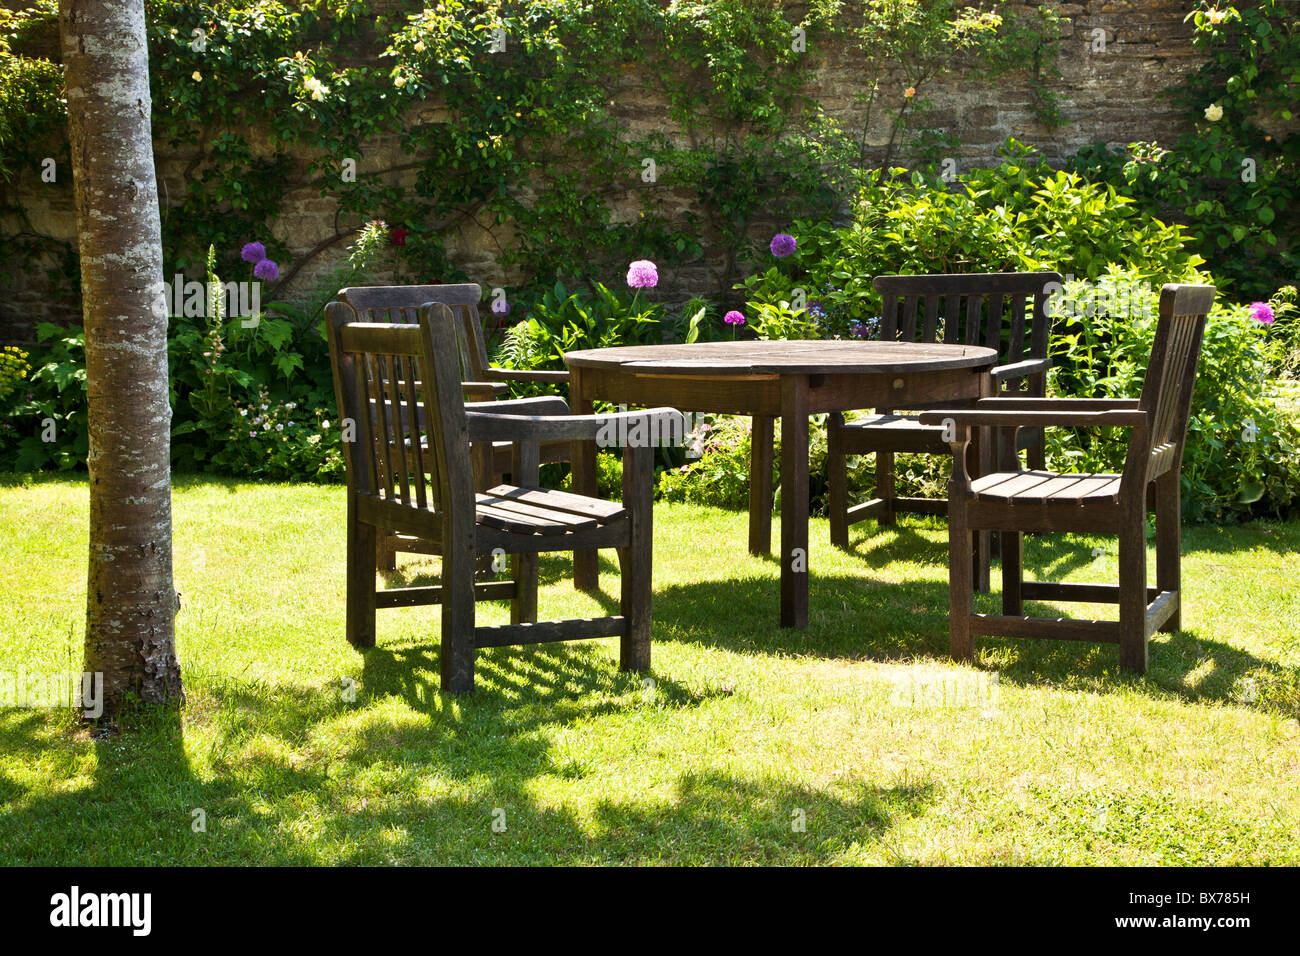 wooden garden furniture stock photos wooden garden furniture stock